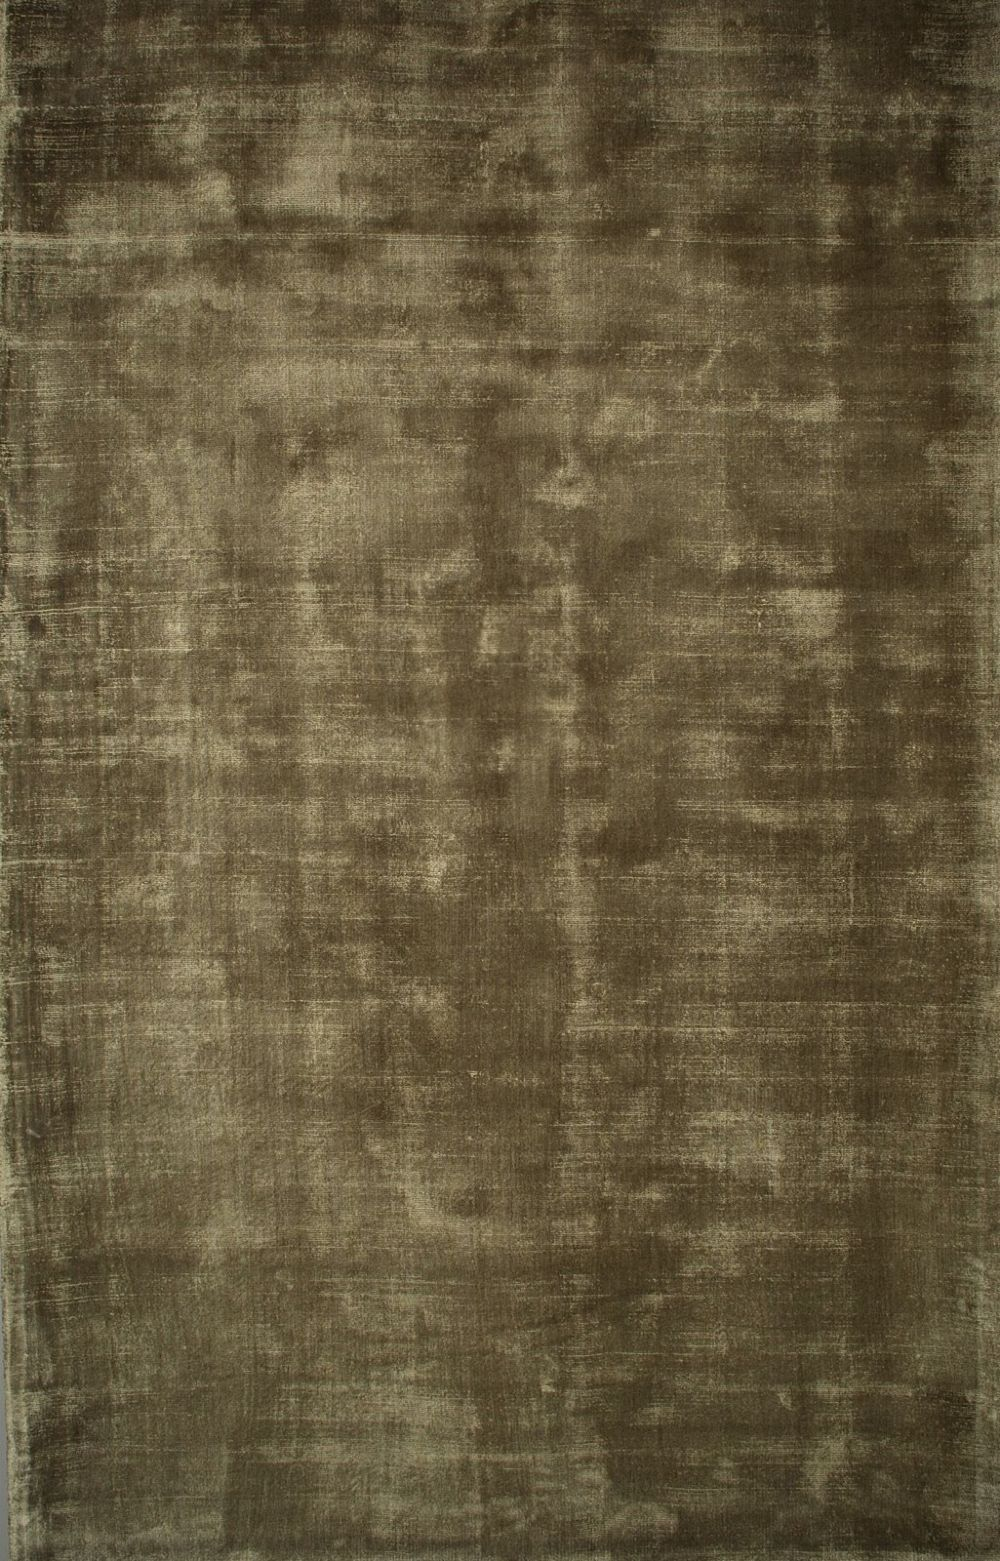 uttermost danuvius contemporary area rug collection